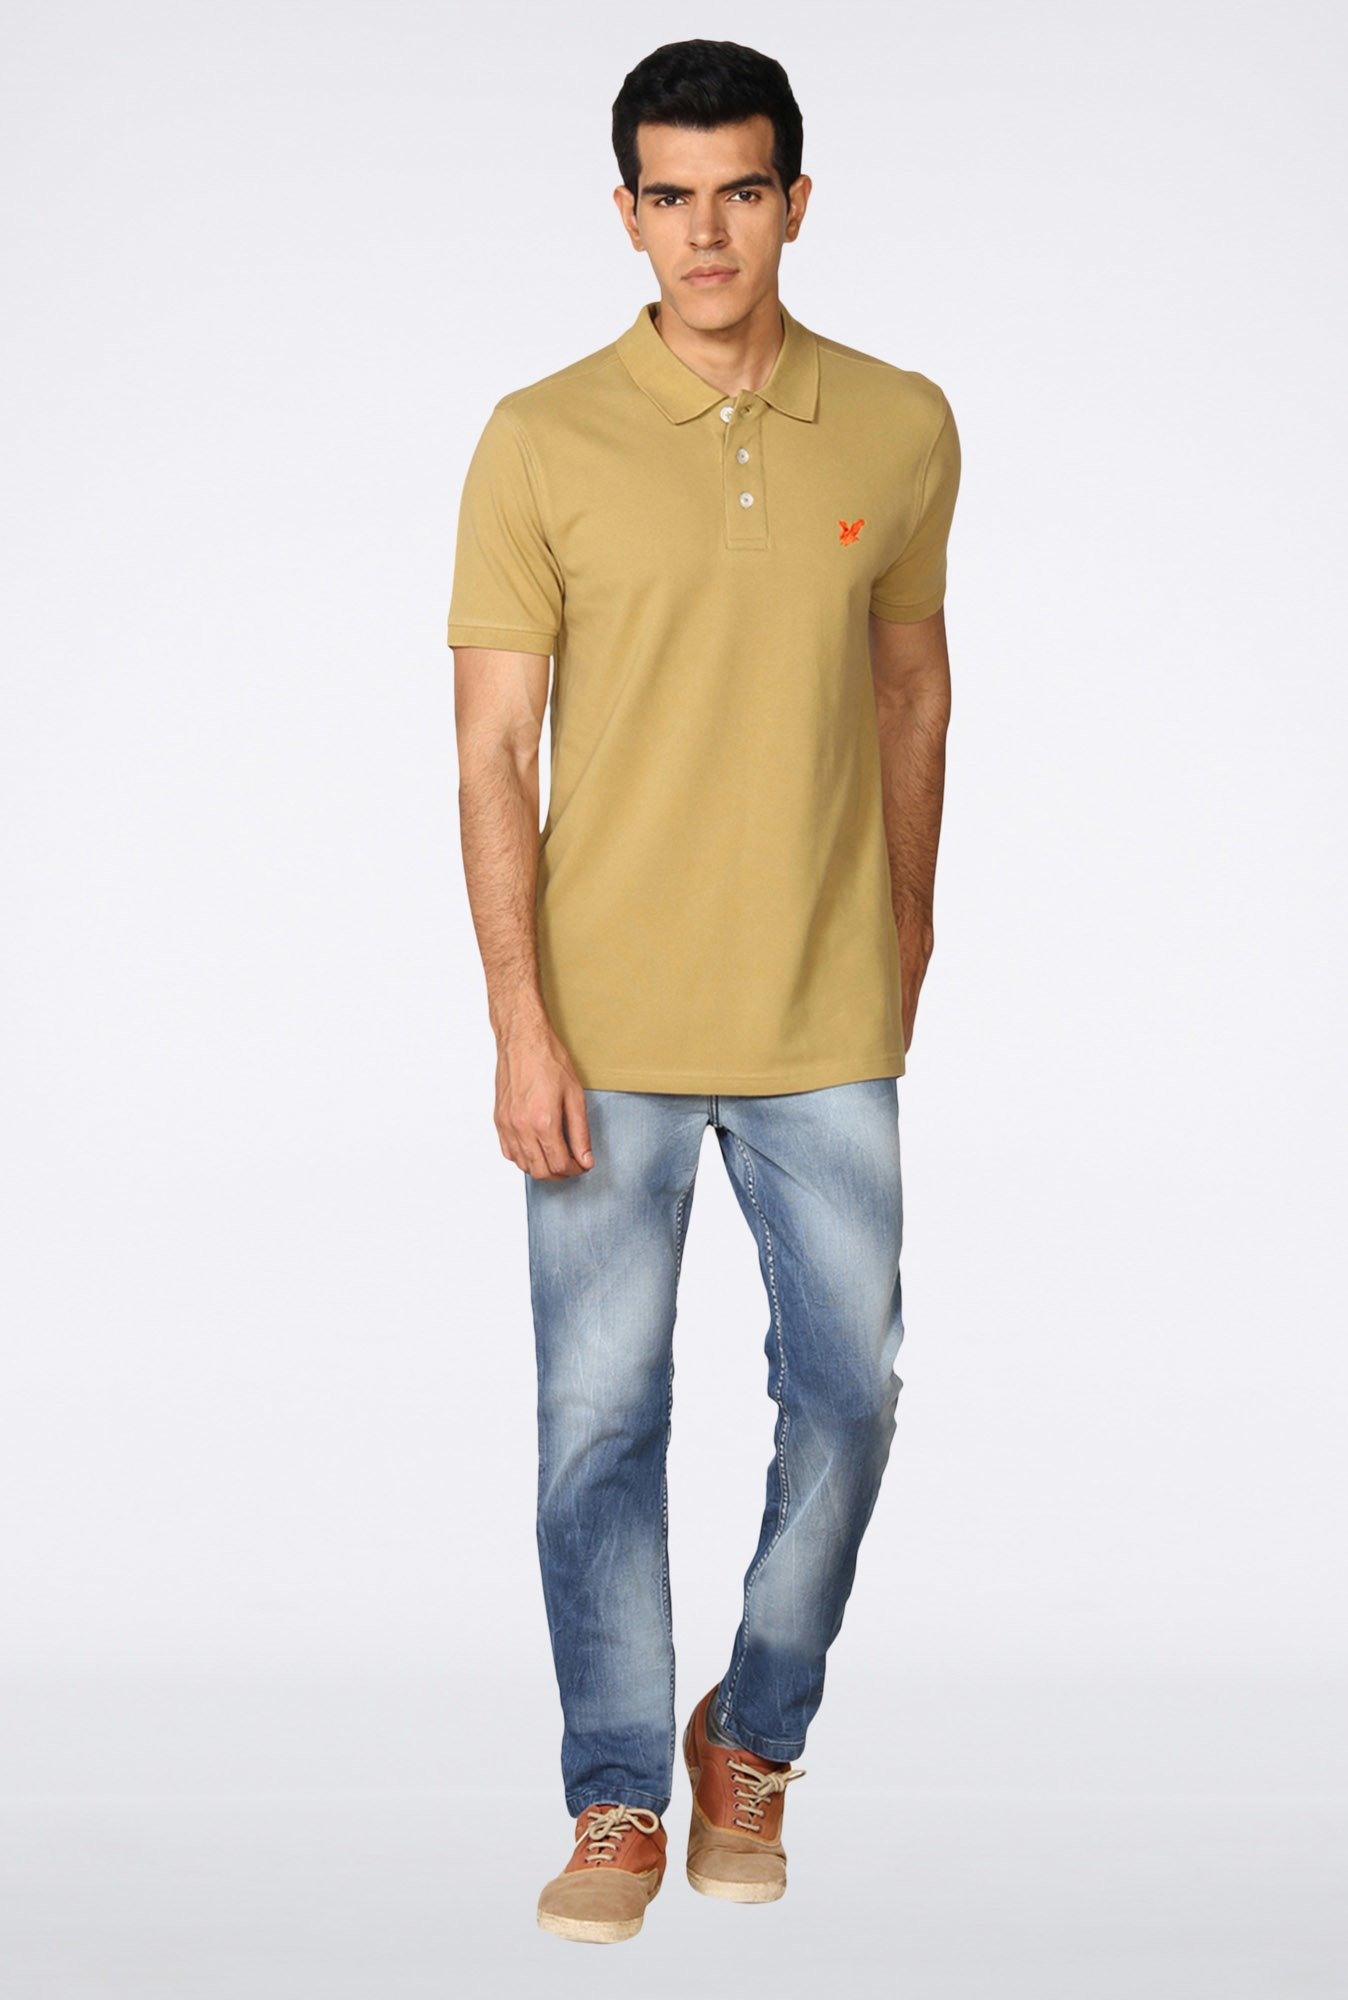 Provogue Light Brown Polo T-Shirt